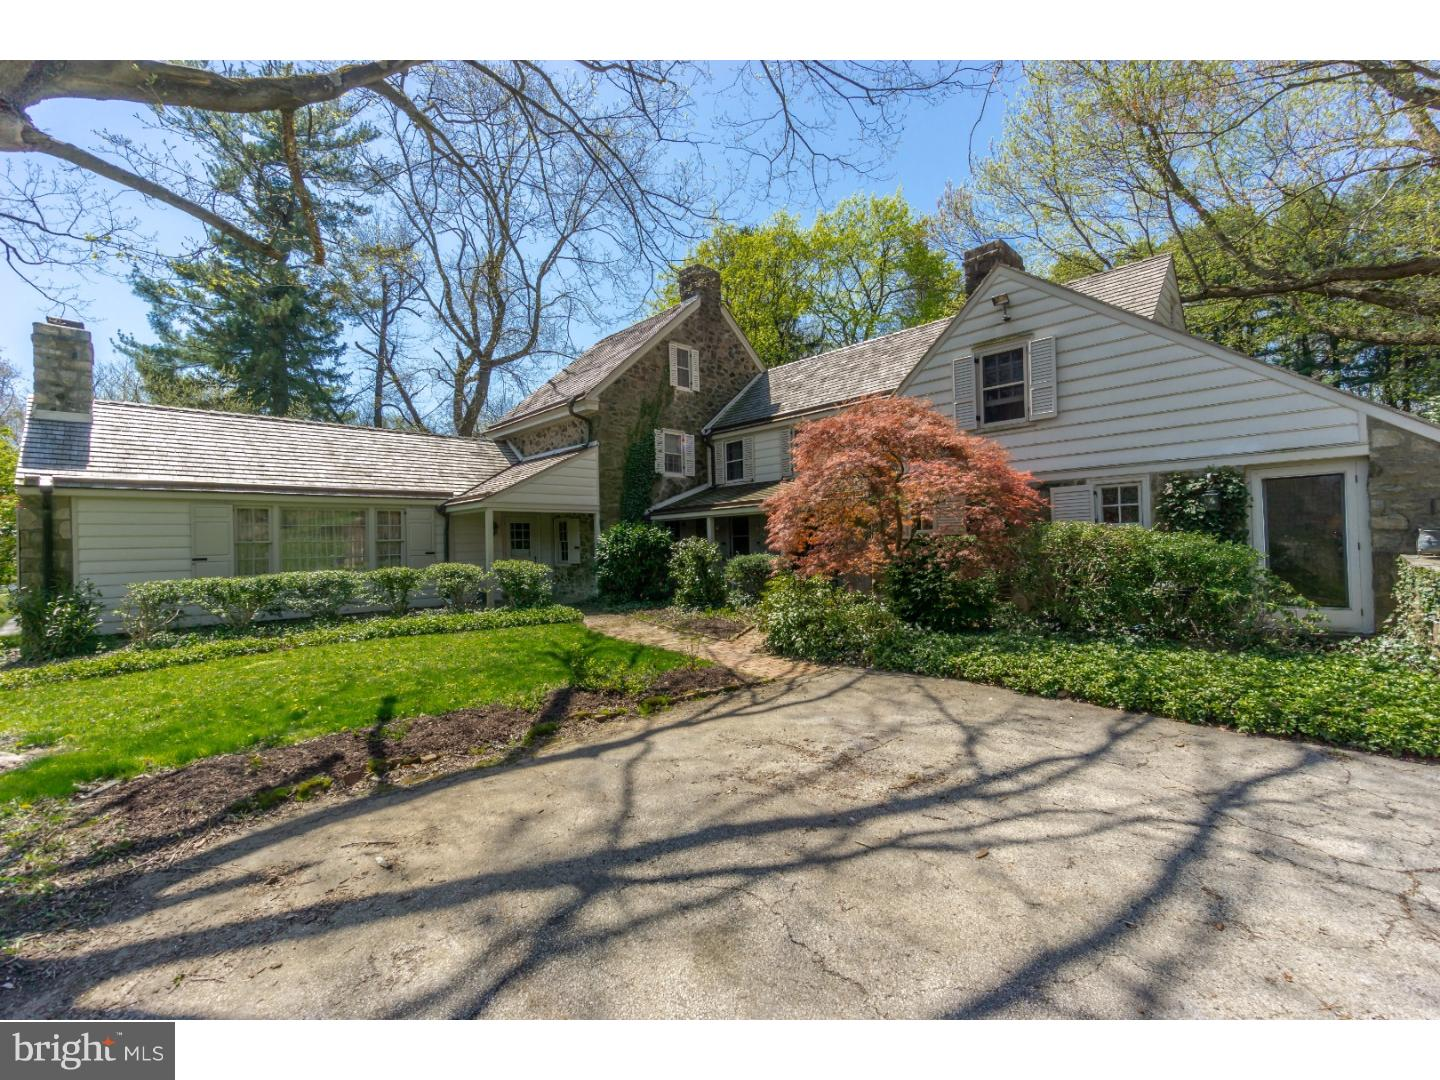 1329 SYCAMORE MILLS ROAD, GLEN MILLS, PA 19342